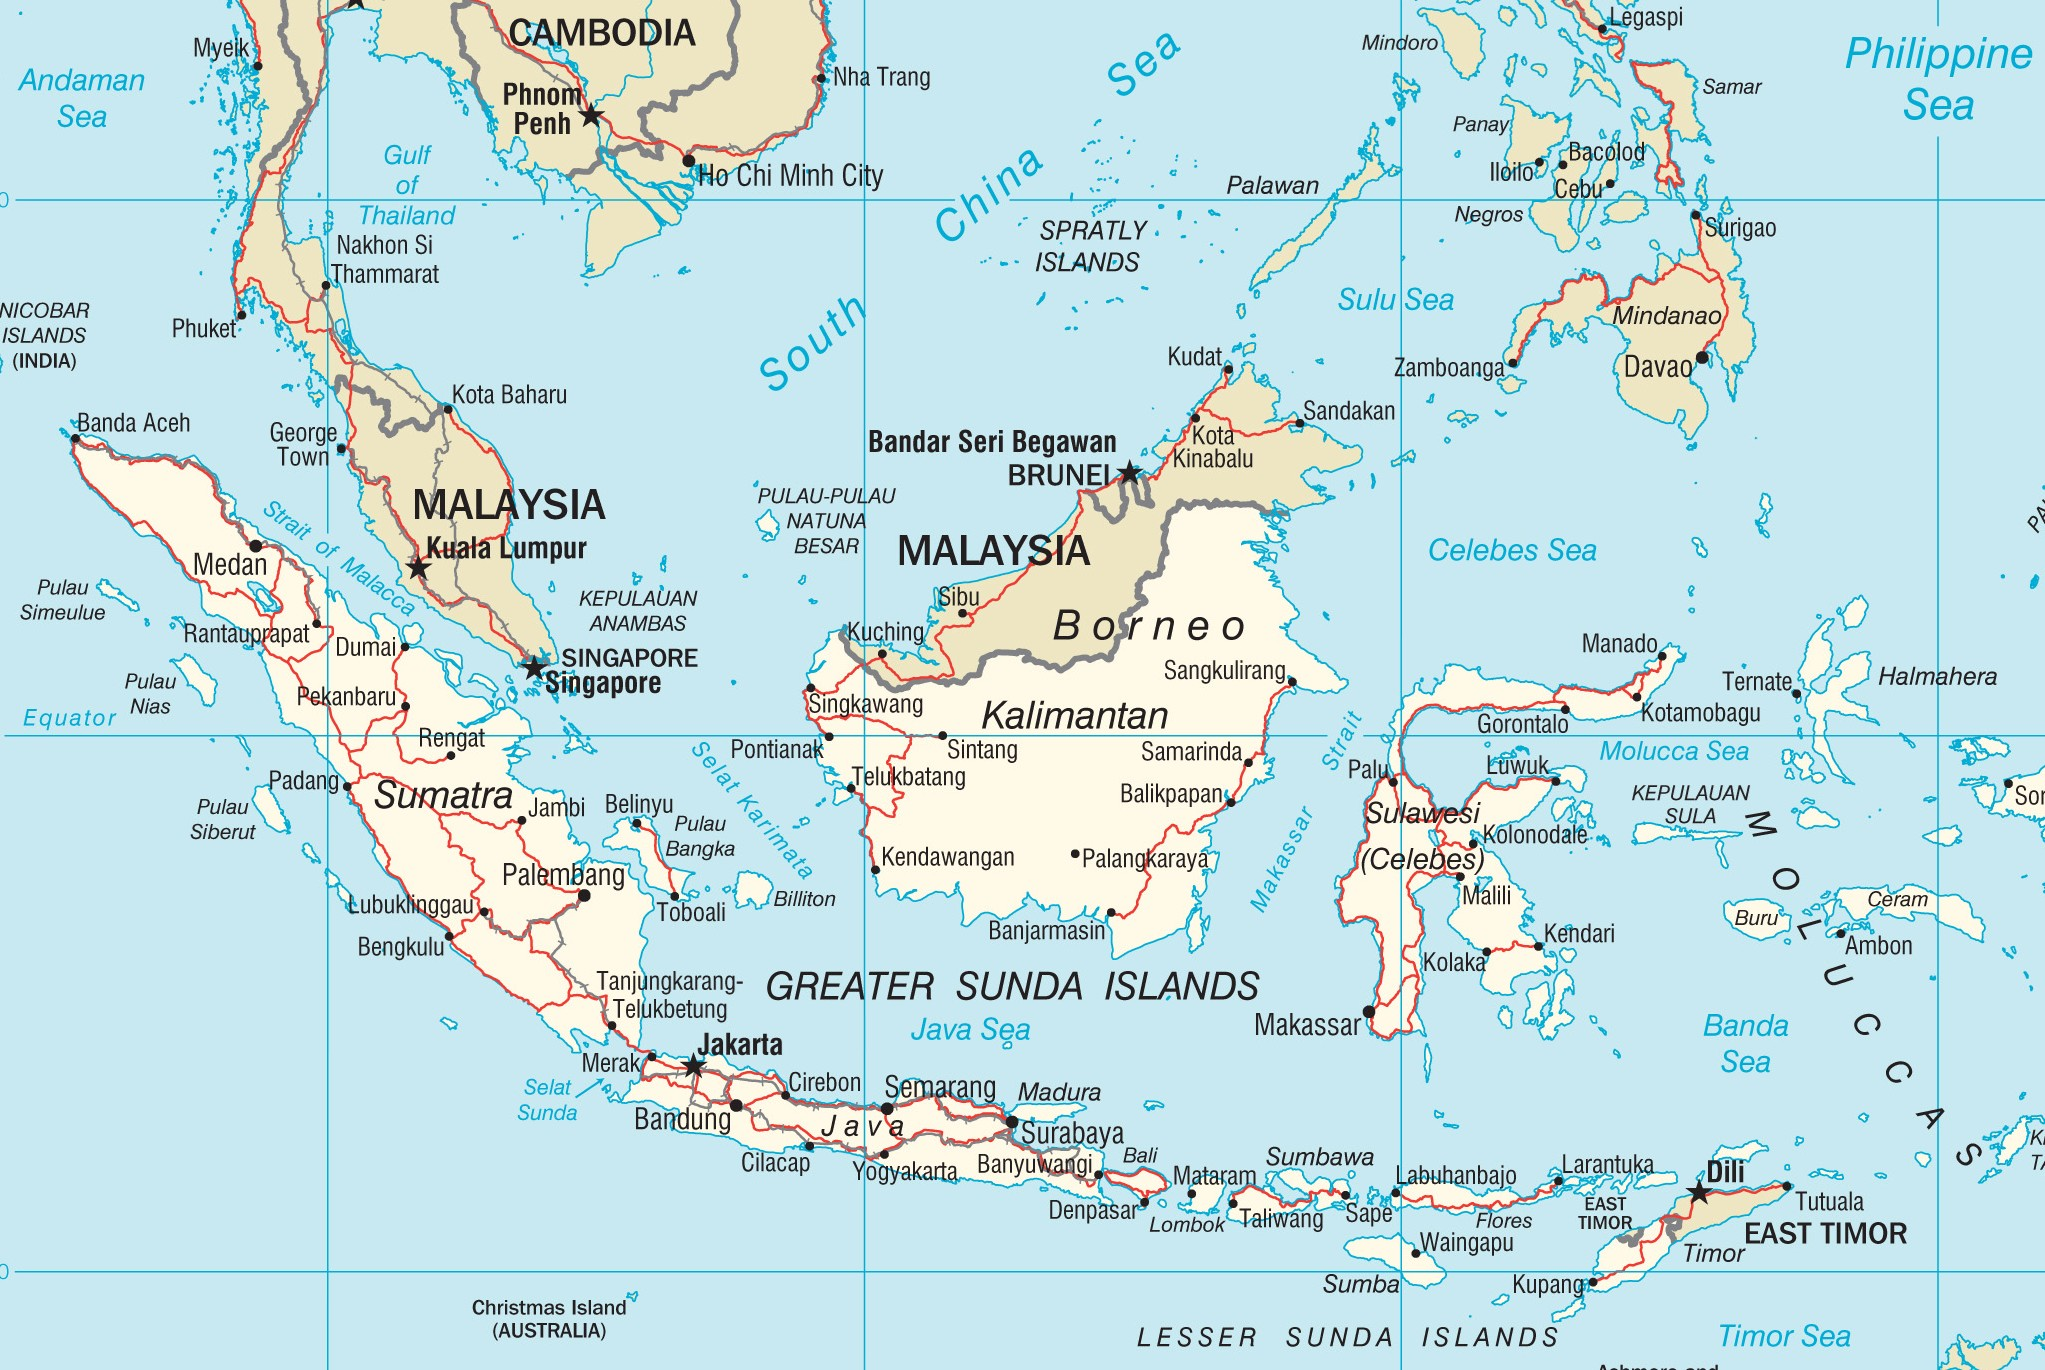 Indonesia: reference price for cocoa beans increases, Cpo ... on map of wimauma, map of shalimar, map of howey in the hills, map of vero lake estates, map of oak hill, map of cassadaga, map of casselberry, map of melbourne beach, map of sun city center, map of callaway, map of lake panasoffkee, map of citrus, map of sebastian inlet state park, map of rotonda, map of platinum, map of eastport, map of long key, map of north redington shores, map of big coppitt key, map of wheat,